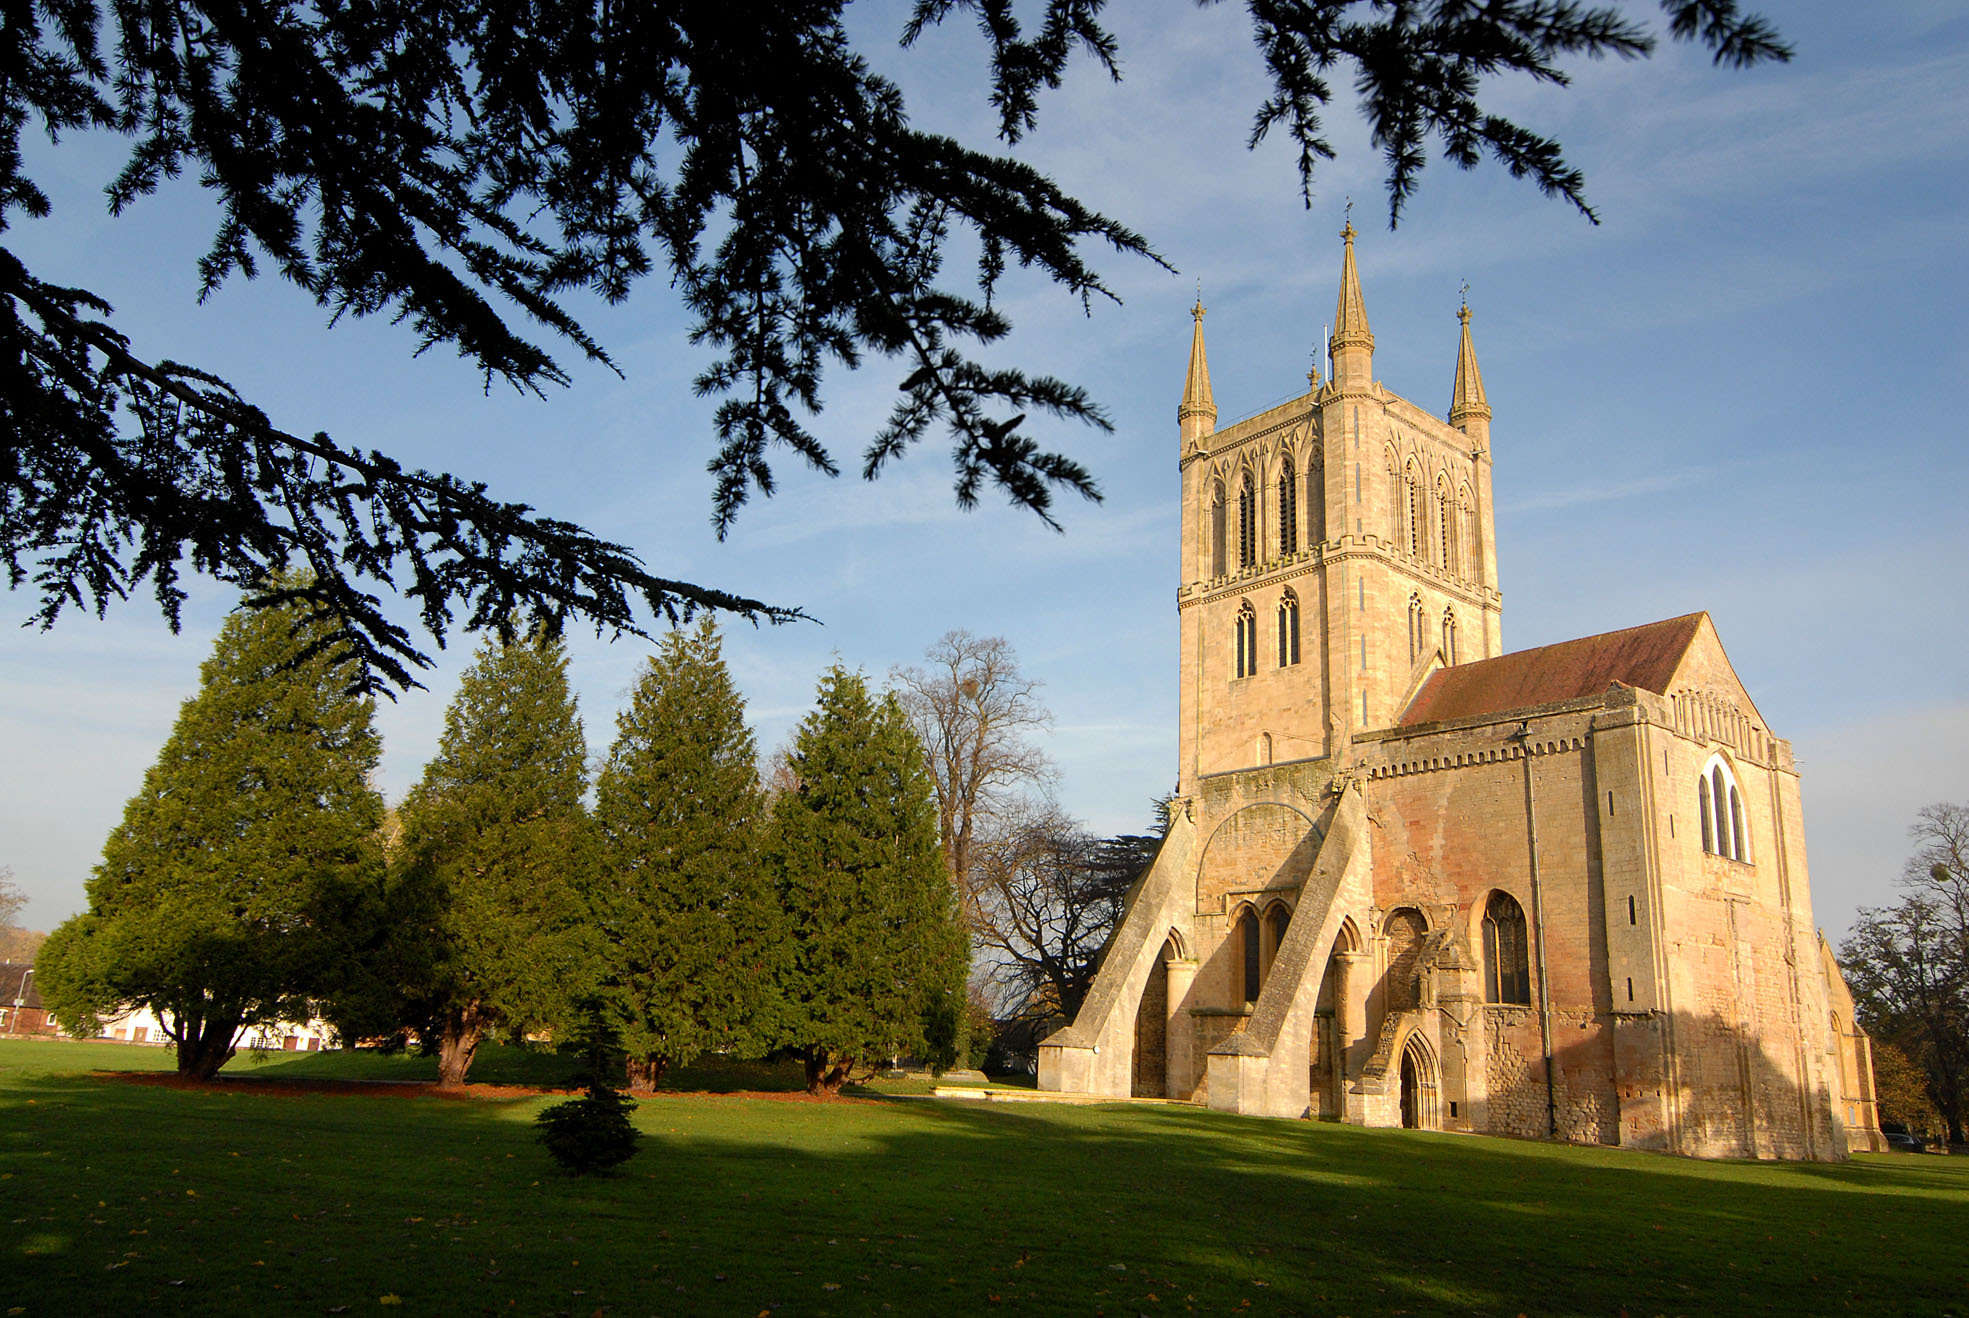 CONCERT: Pershore Abbey is holding a concert to celebrate West Mercia Police Band's anniversary